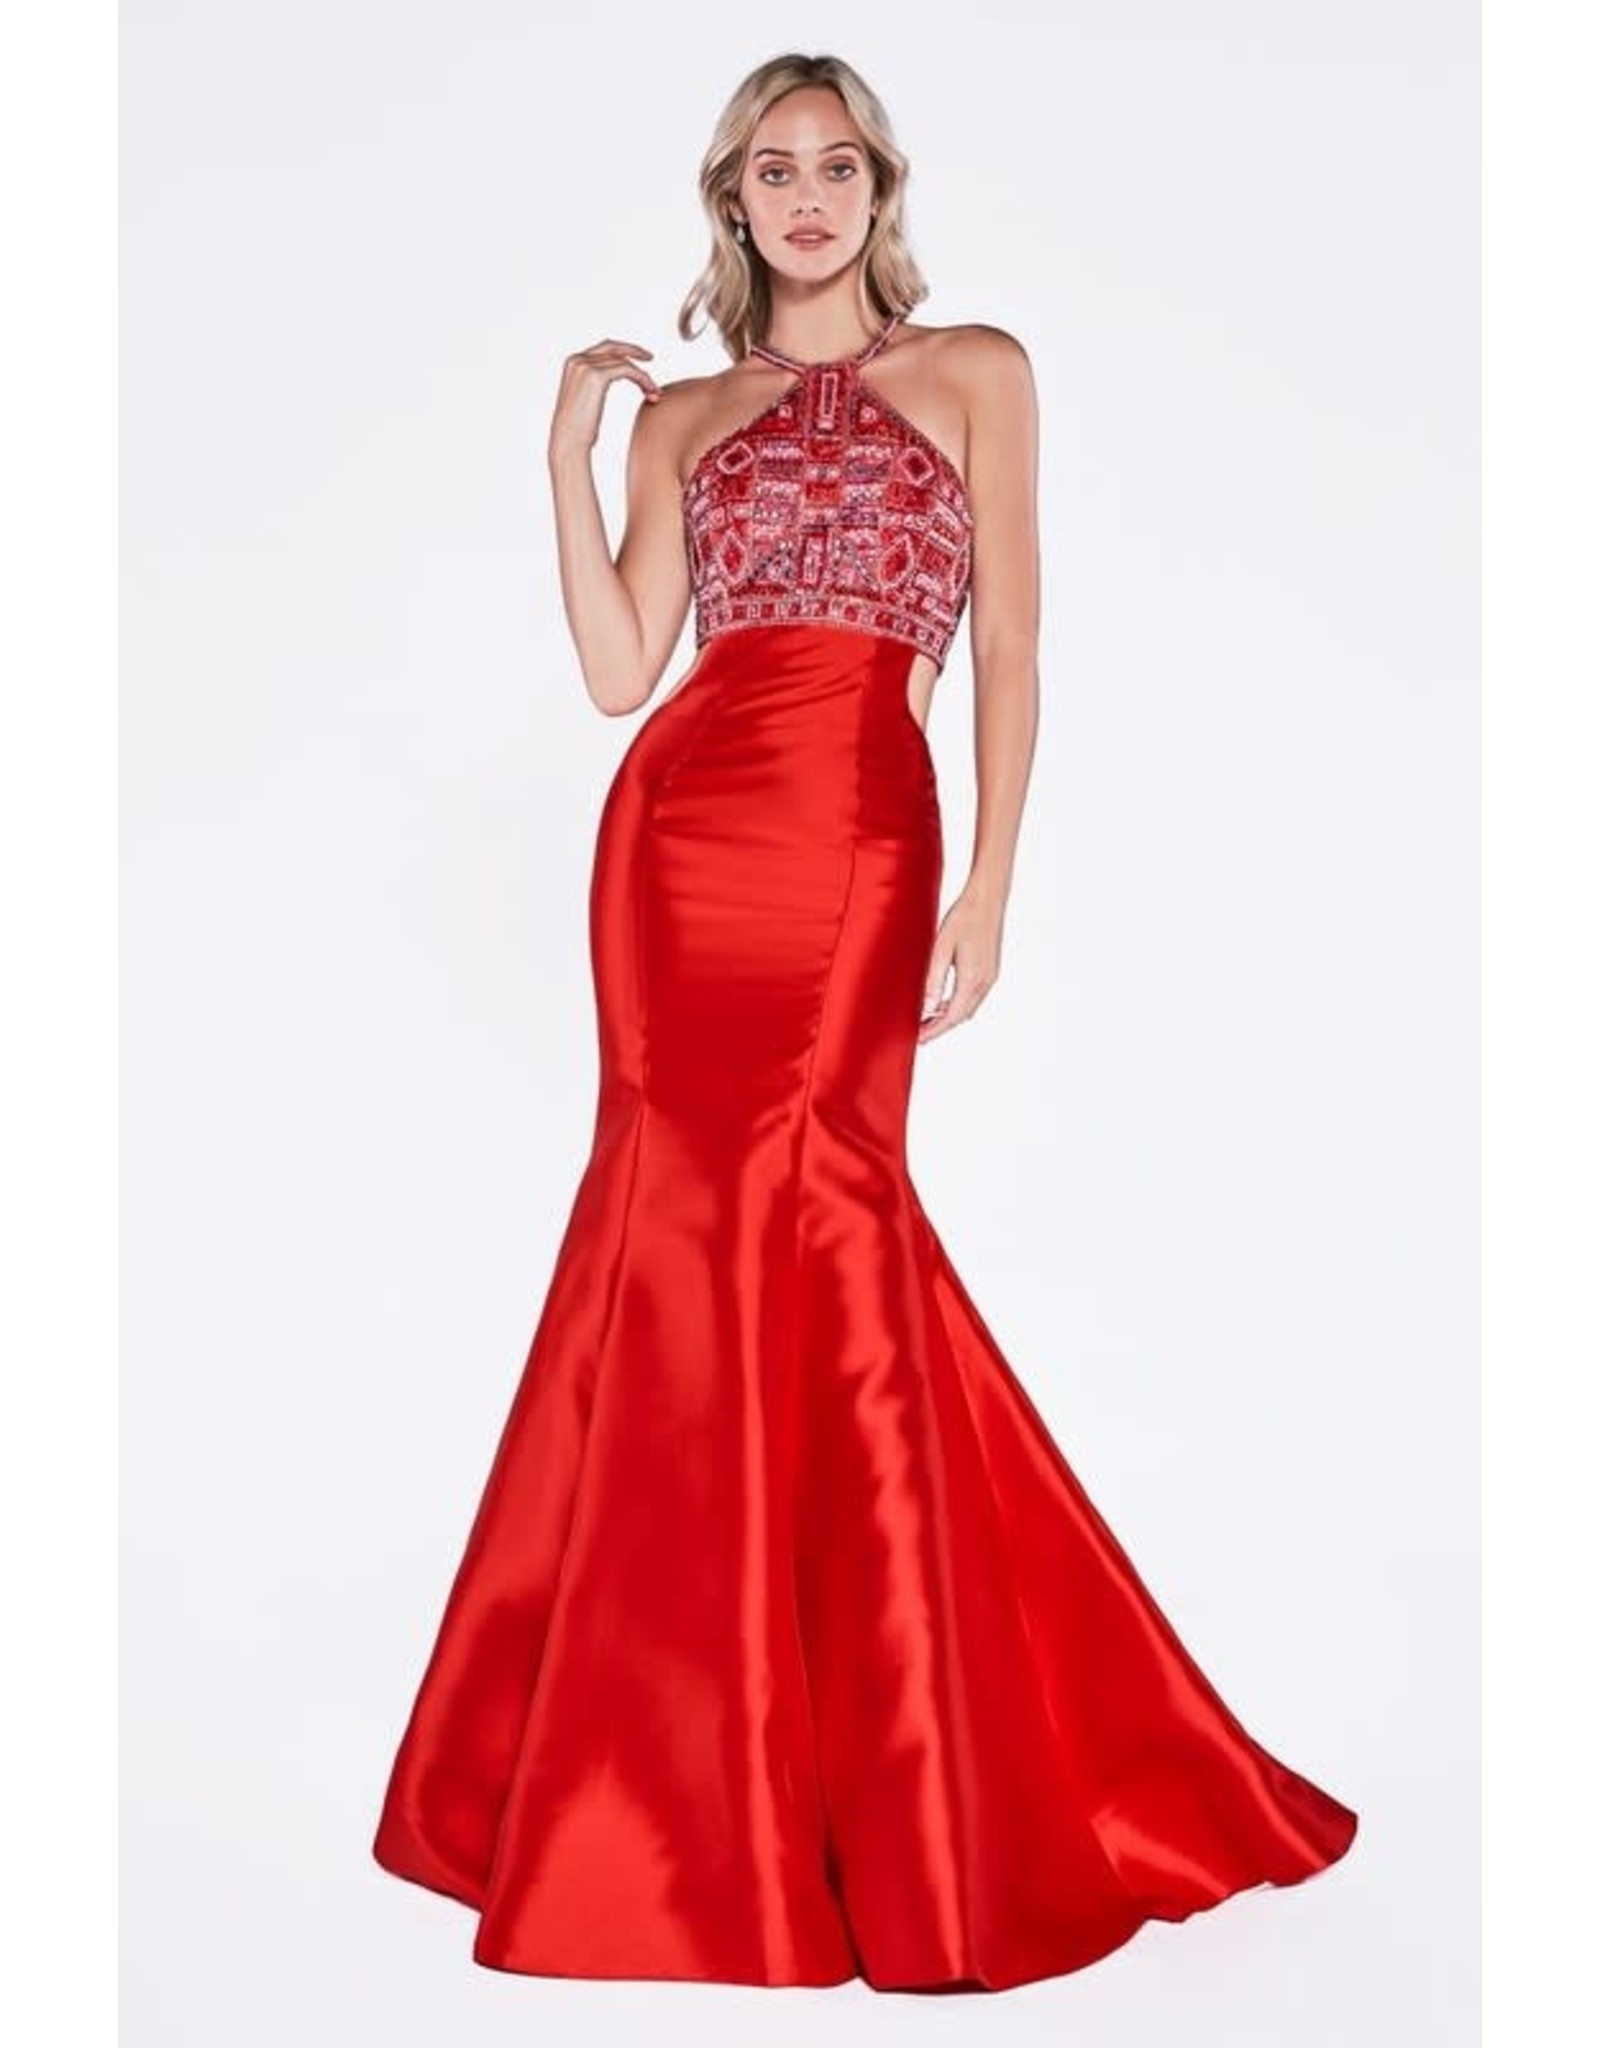 Red Bead Halter Top Prom Dress